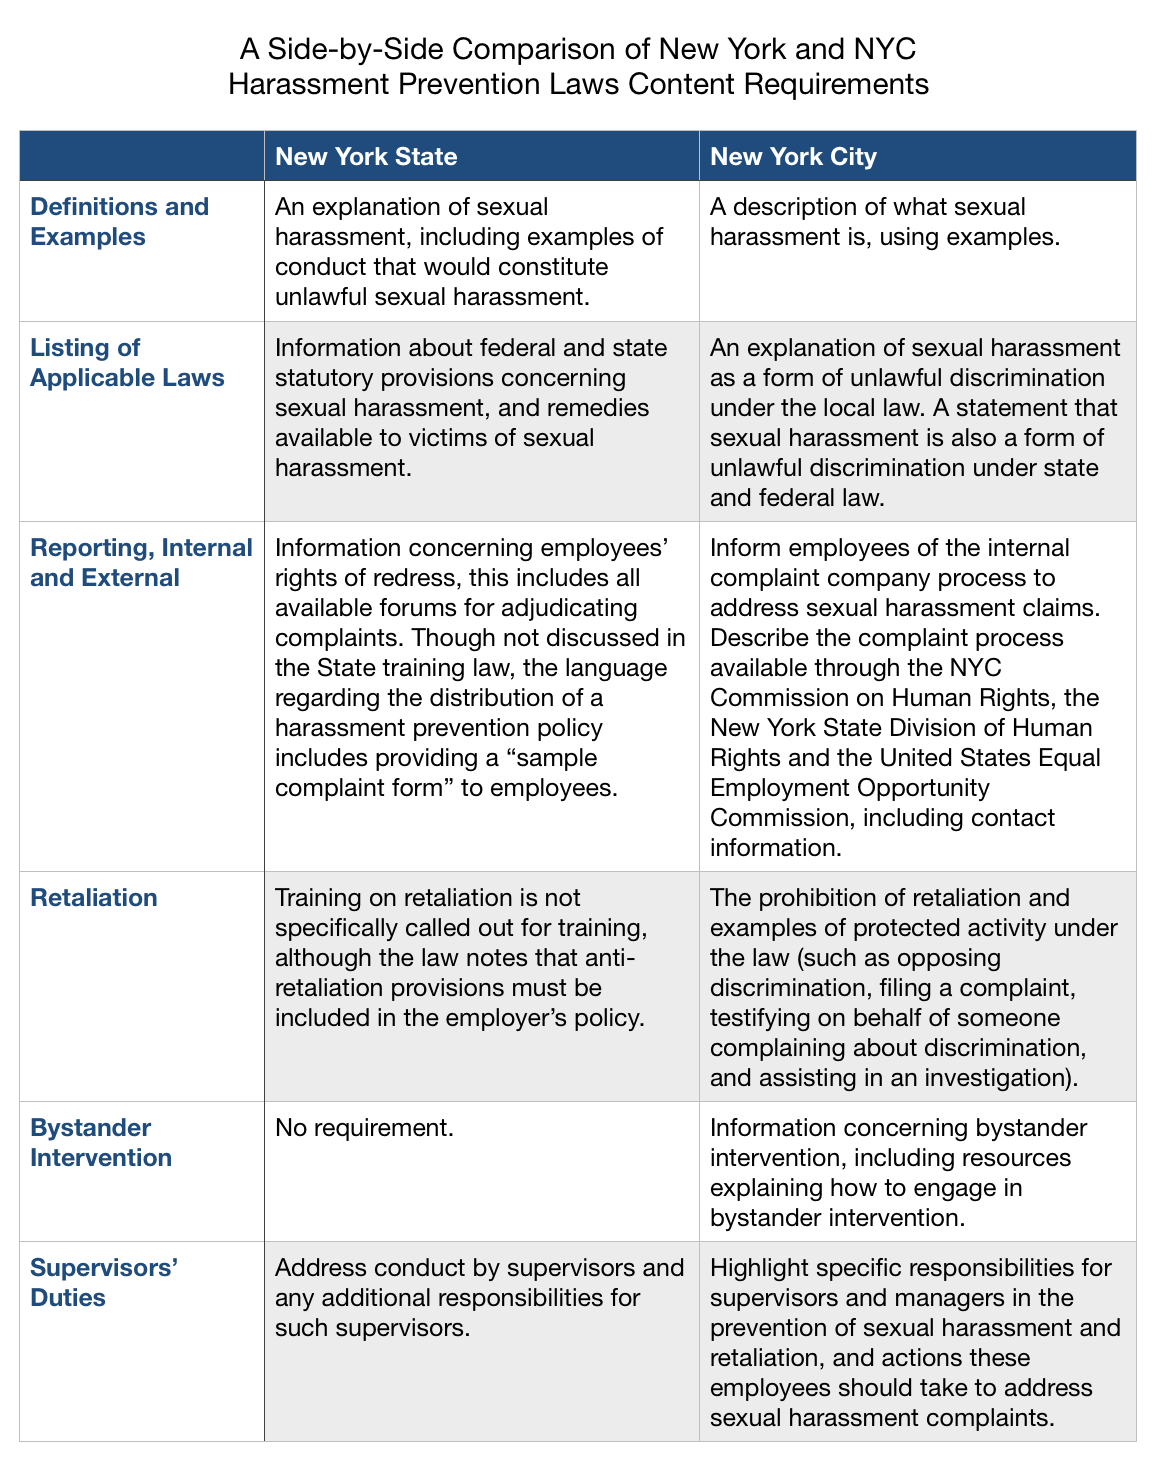 A Side-by-Side Comparison of New York and NYC Harassment Prevention Laws Content Requirements